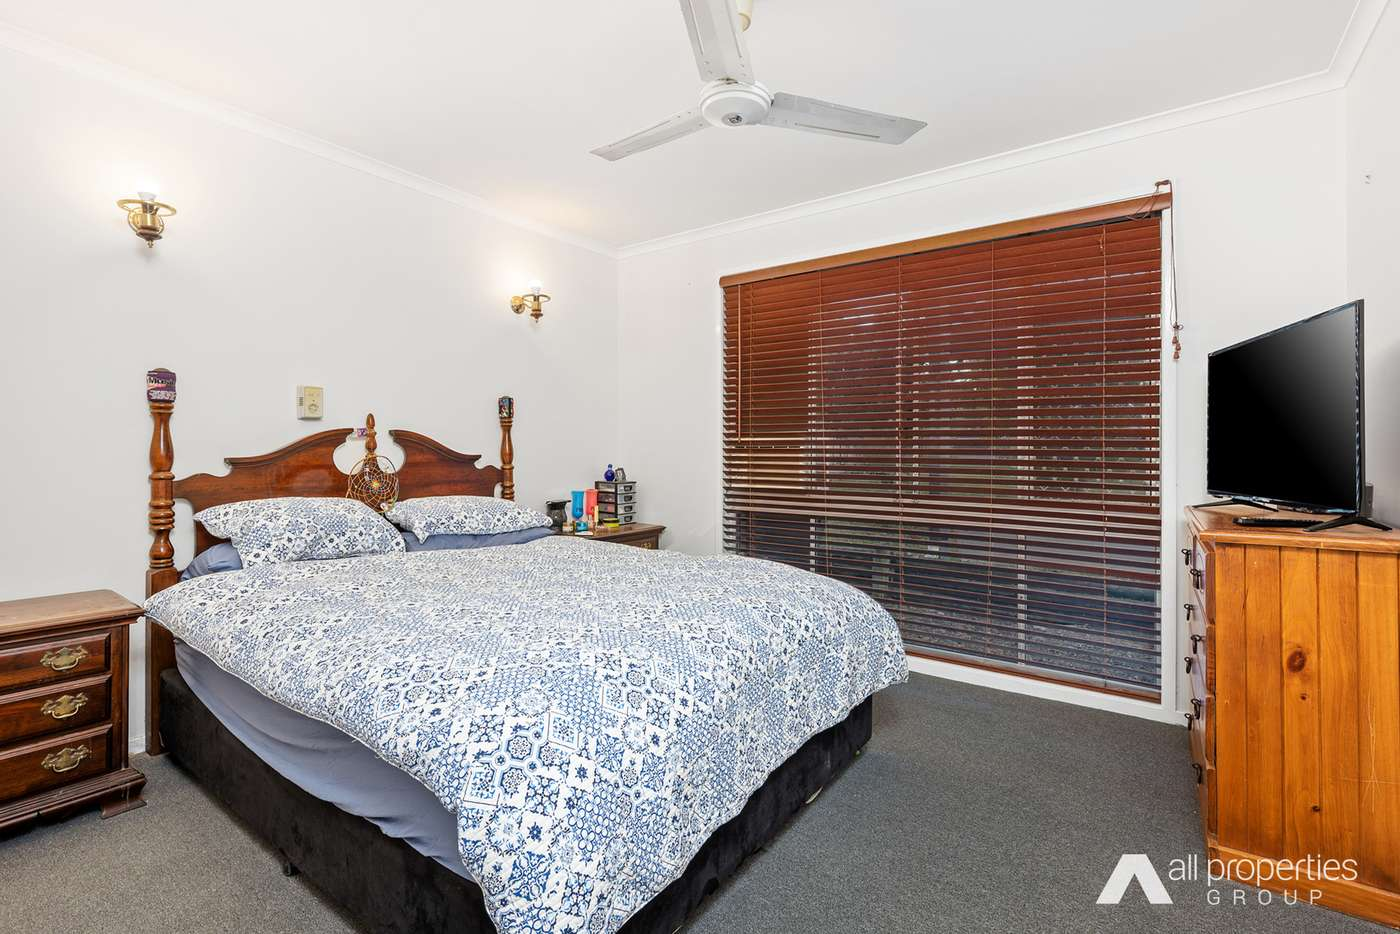 Sixth view of Homely house listing, 23 Sweetgum Street, Hillcrest QLD 4118